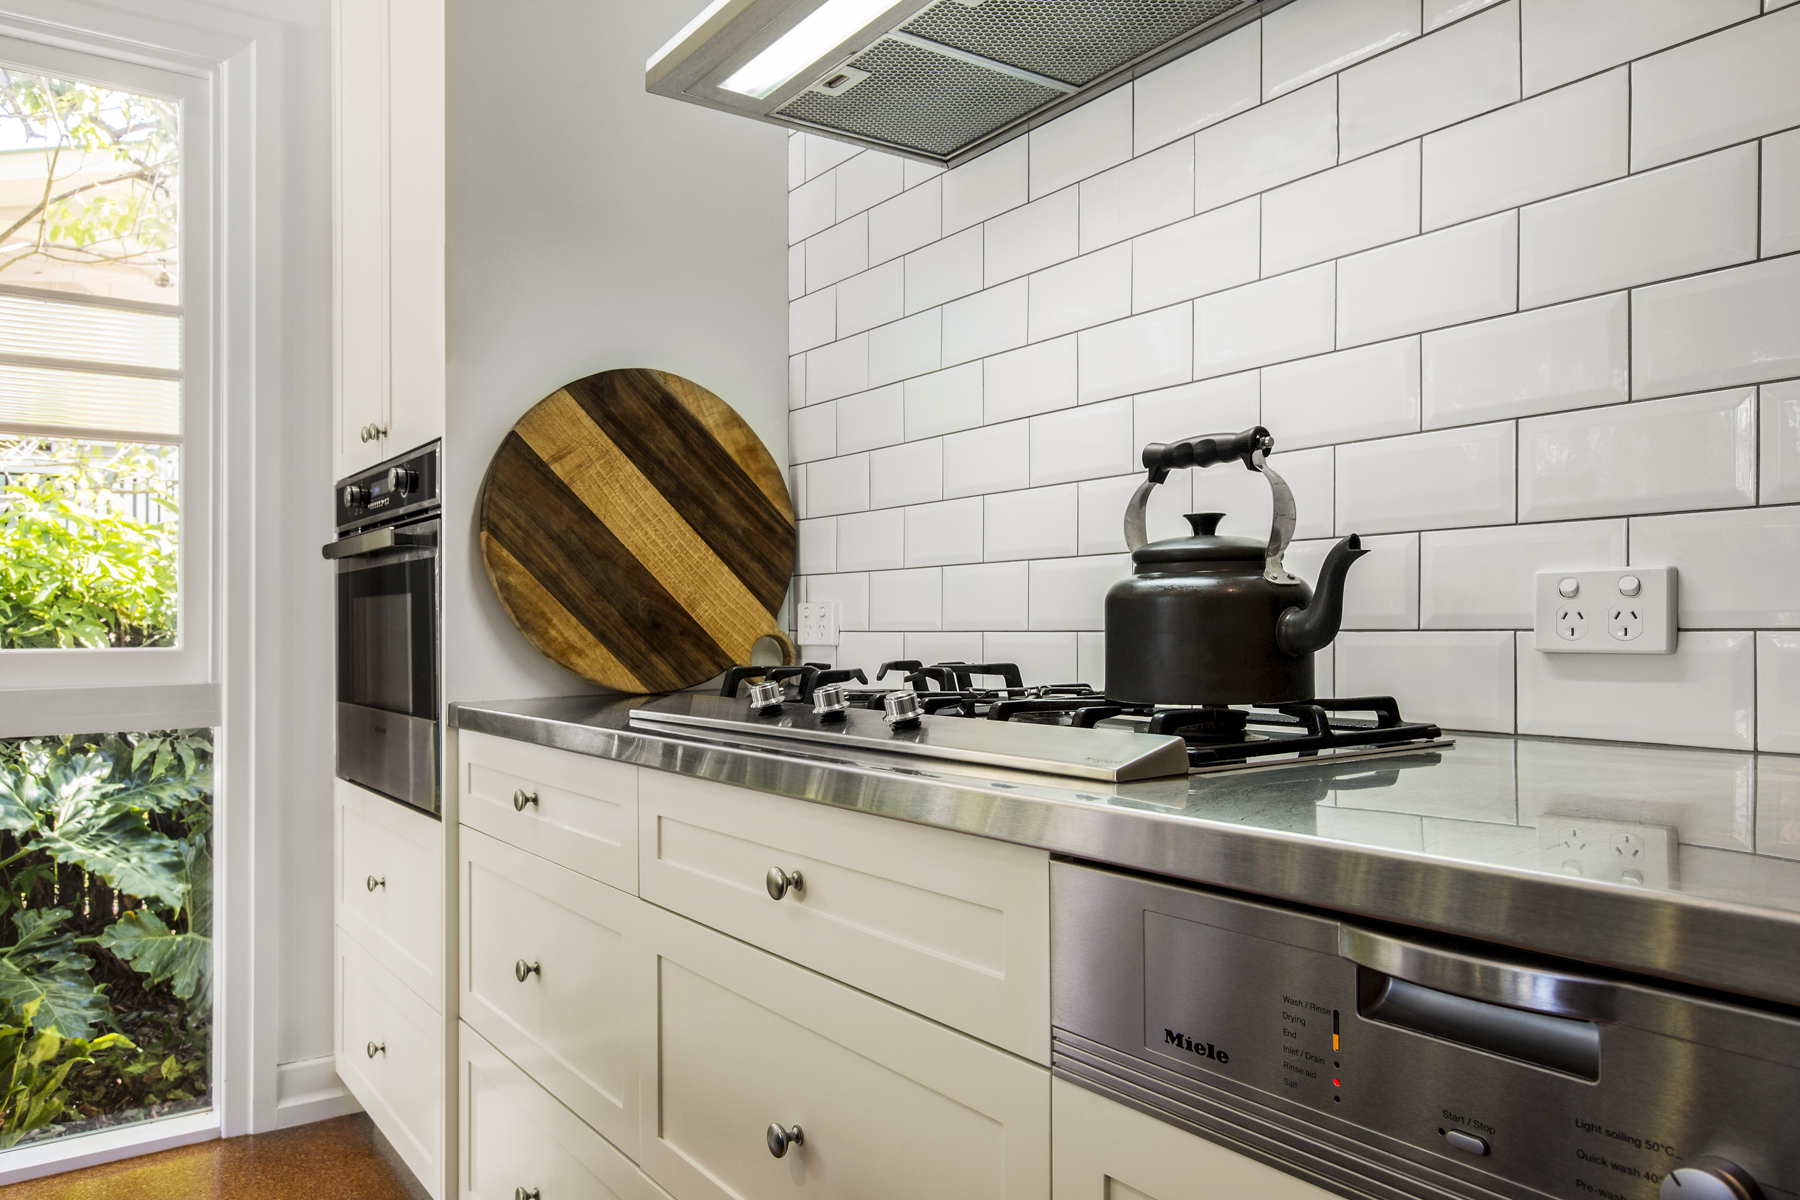 ... Country Kitchen Design Brisbane With Stainless Steel Bench Top